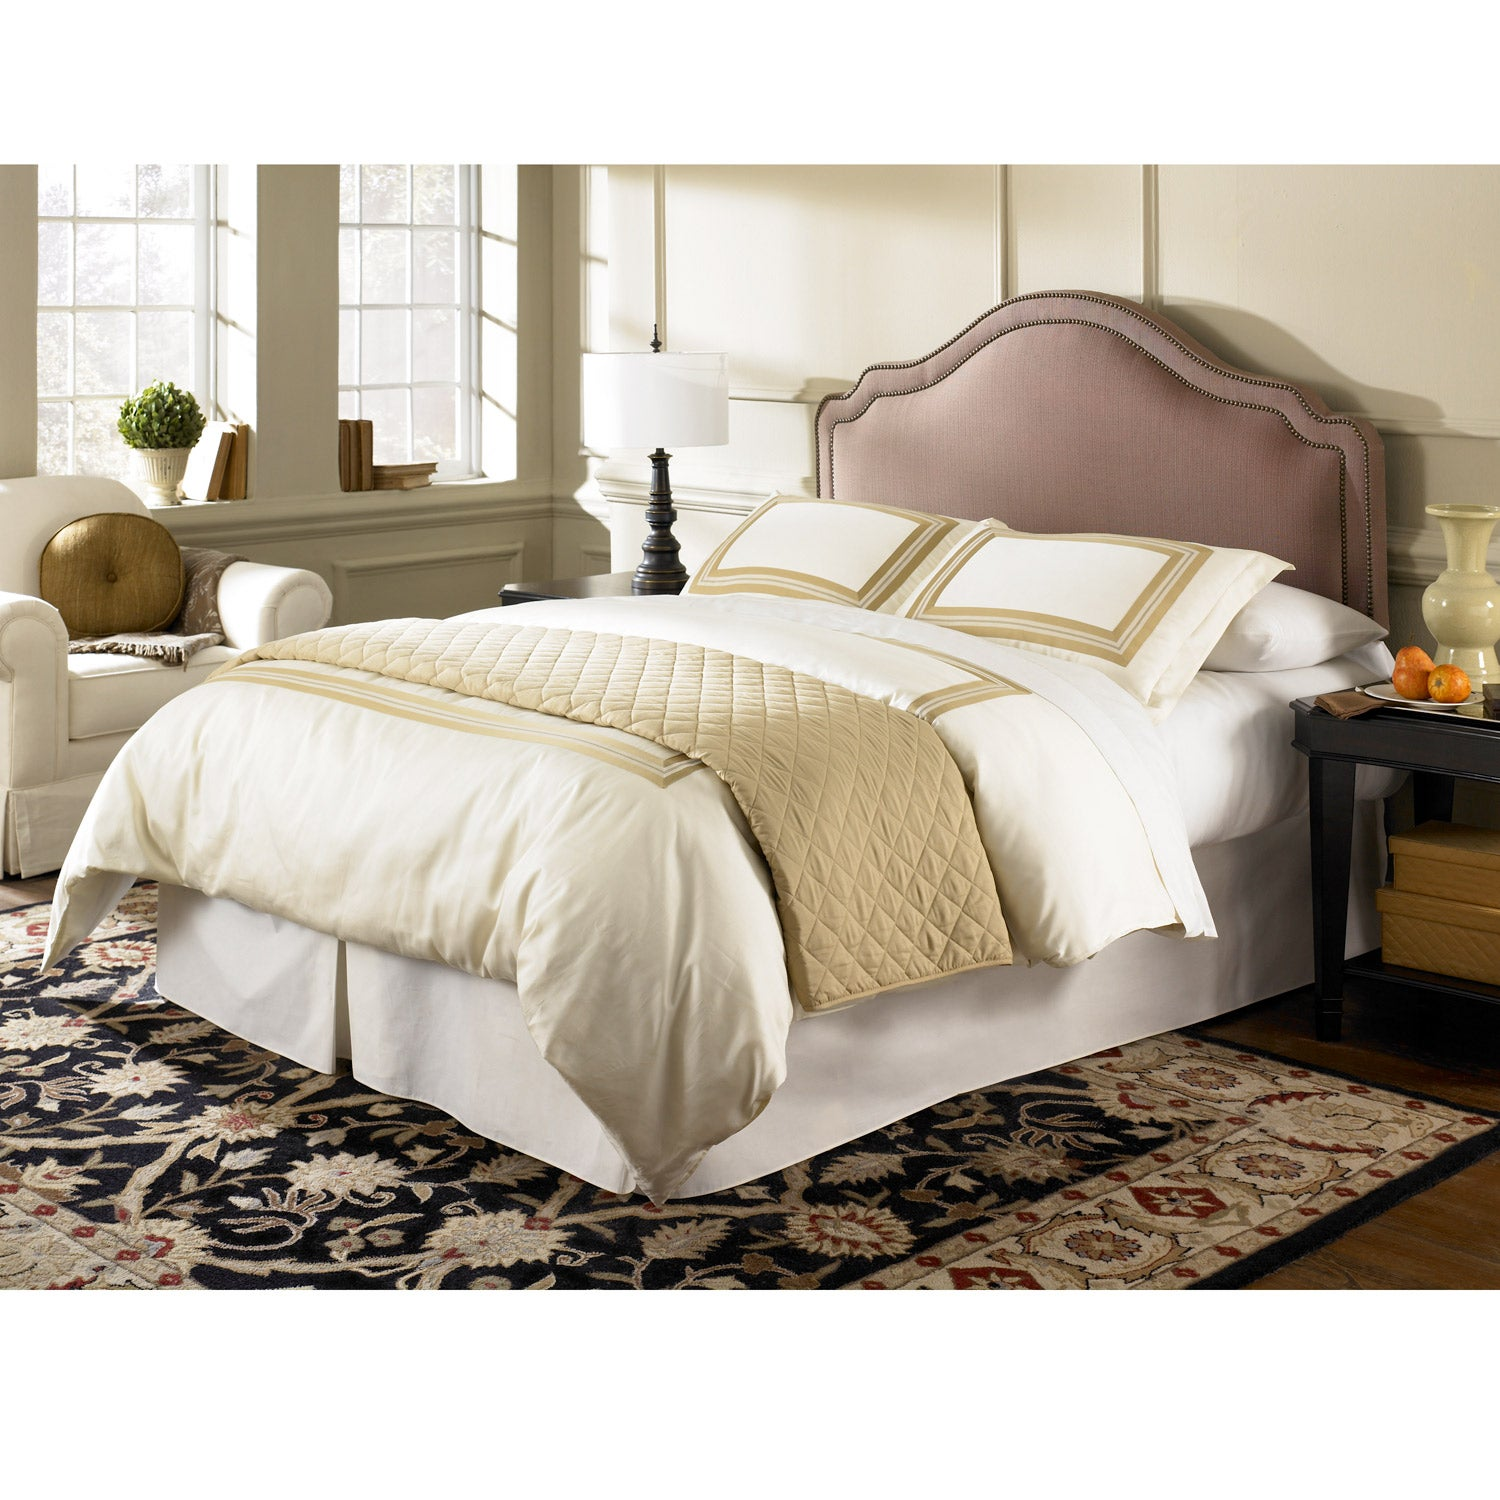 Fashion Bed Saint Marie King Cal King Upholestered